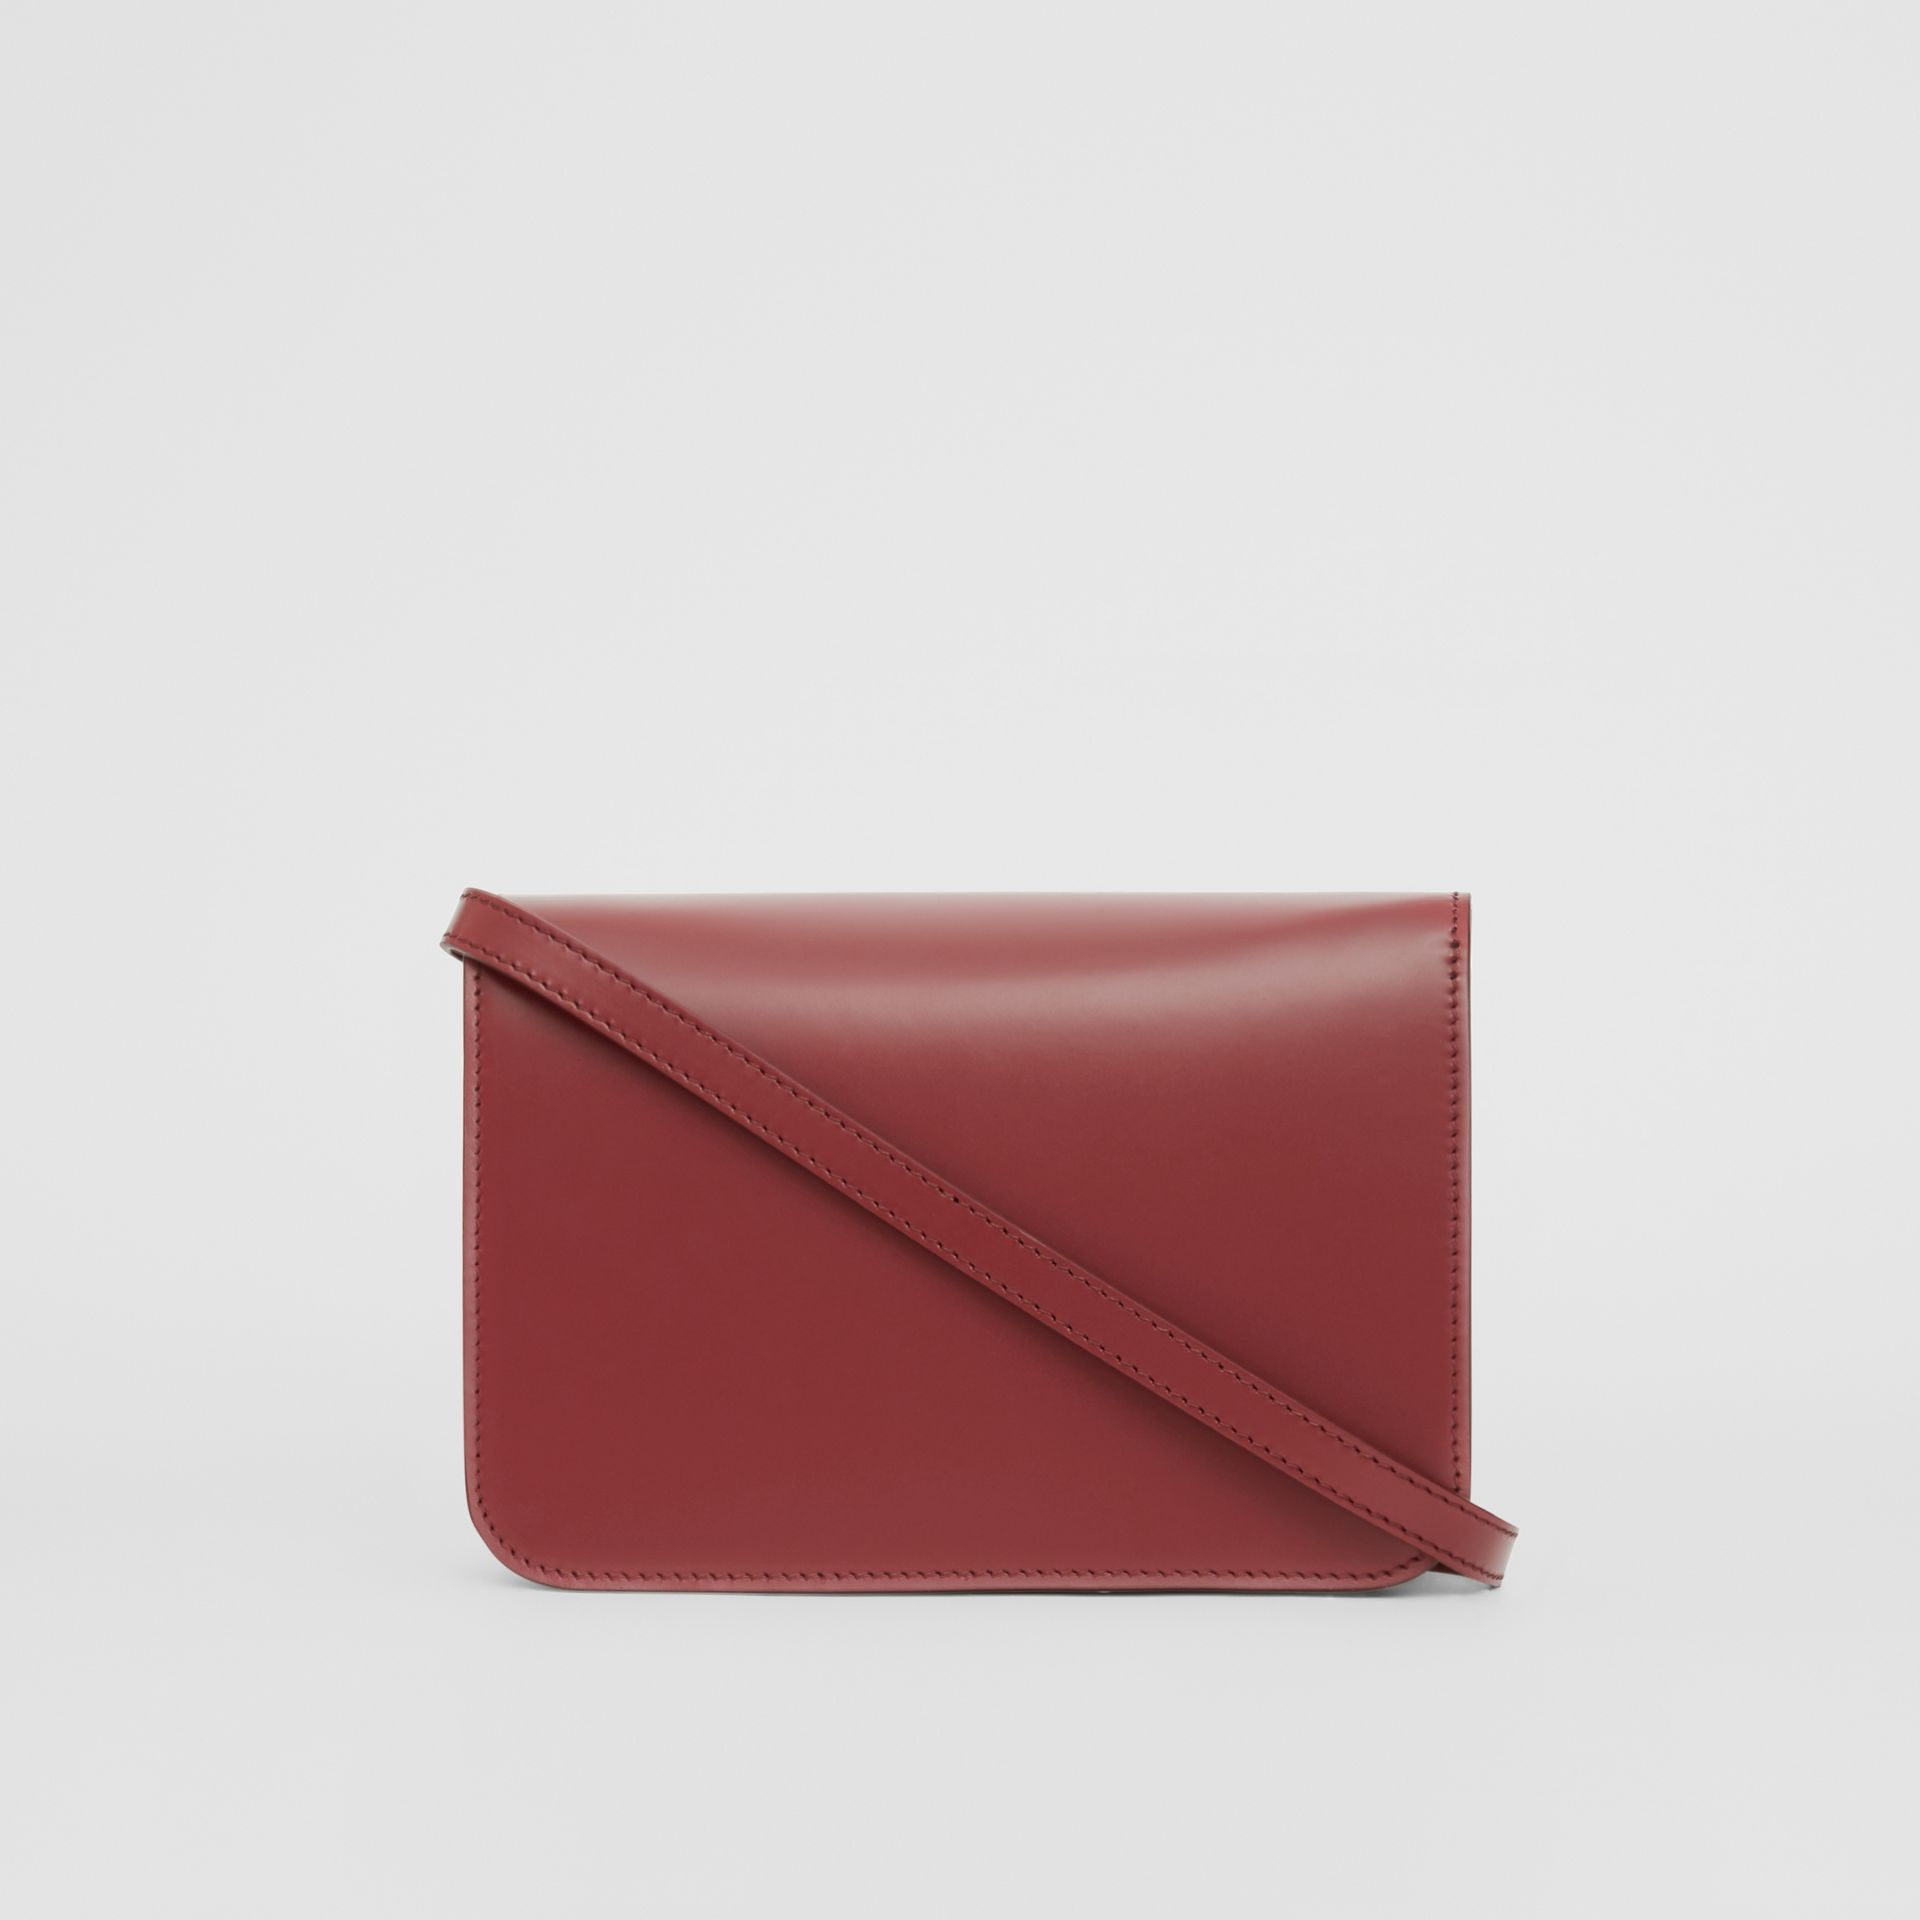 Small Leather TB Bag in Crimson - Women | Burberry - gallery image 5